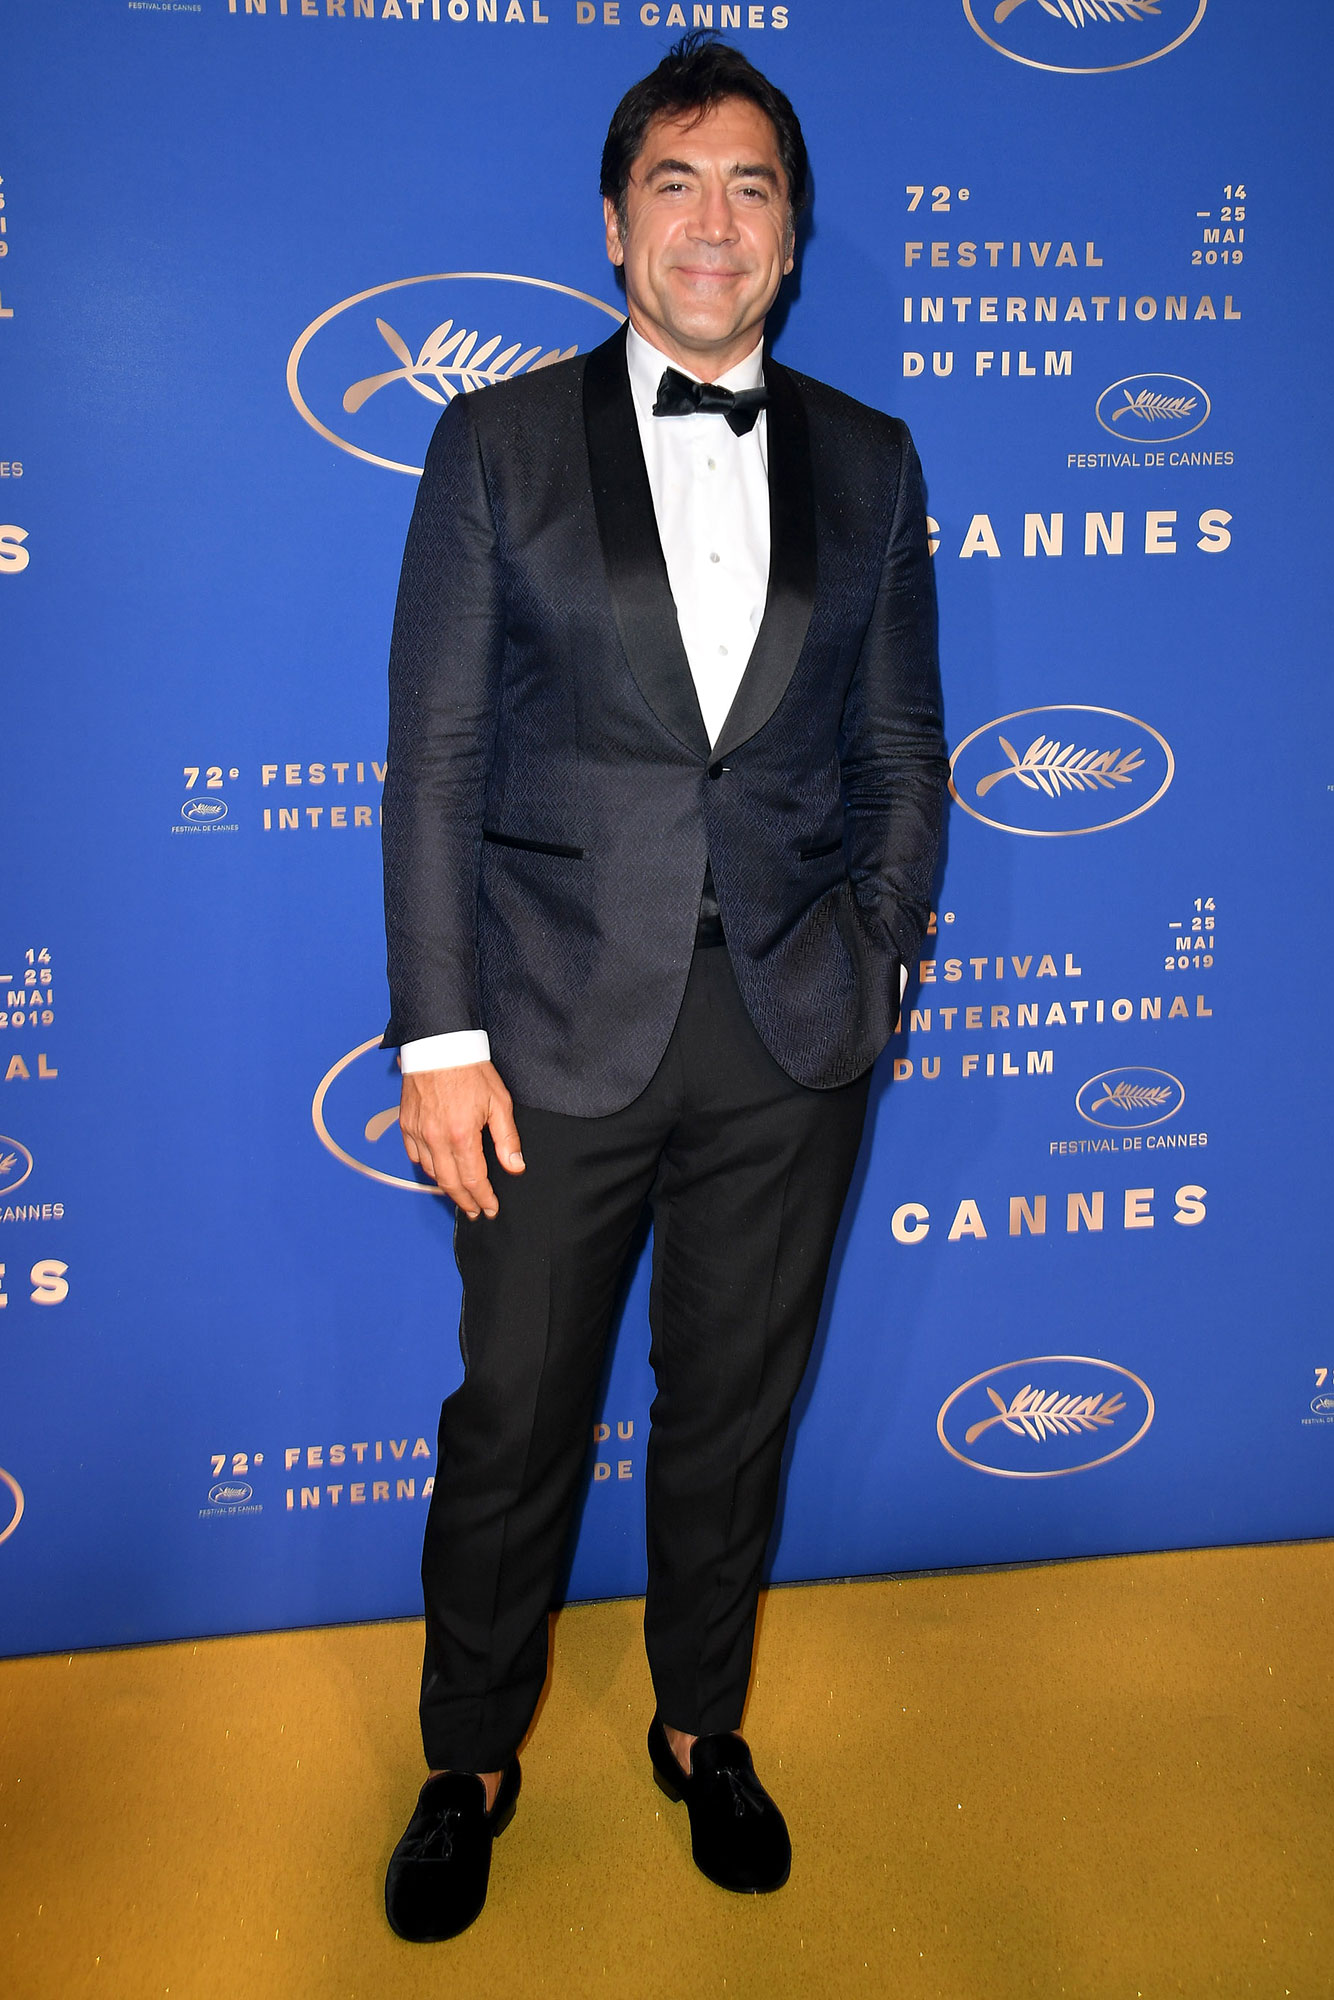 Javier Bardem Cannes Film Festival 2019 Most Stylish Guys Red Carpet - Black and blue made made a perfect pair on the actor at the Gala Dinner on Tuesday, May 14.